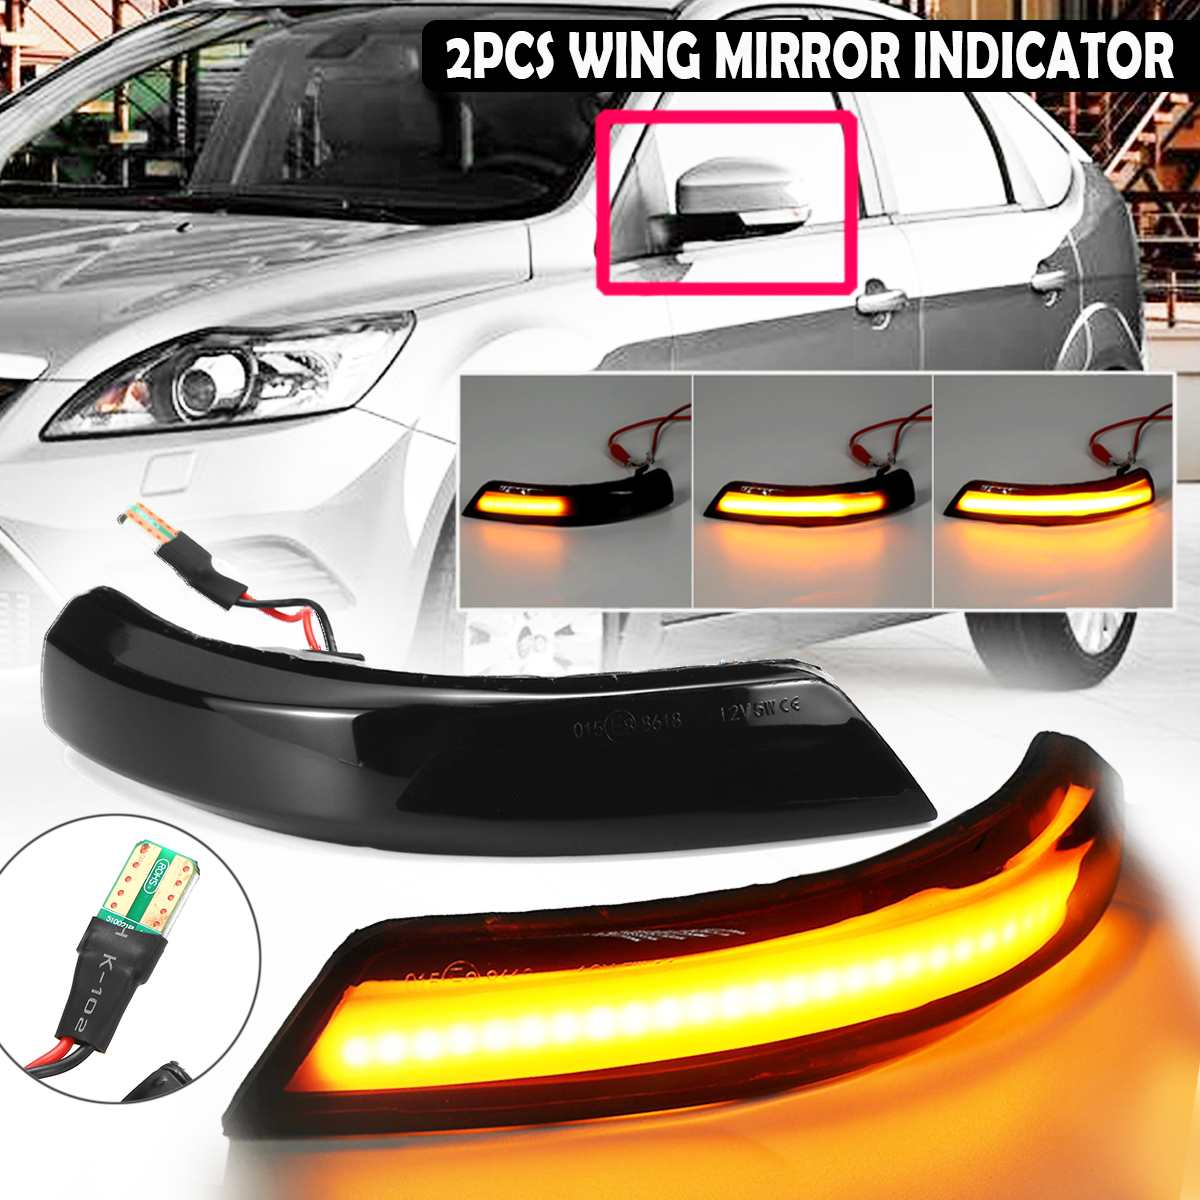 2pcs Flowing Turn Signal Light LED Side Wing Rearview Mirror Dynamic Indicator Blinker For Ford Focus Mk2 Mk3 08-16 Mondeo Mk4